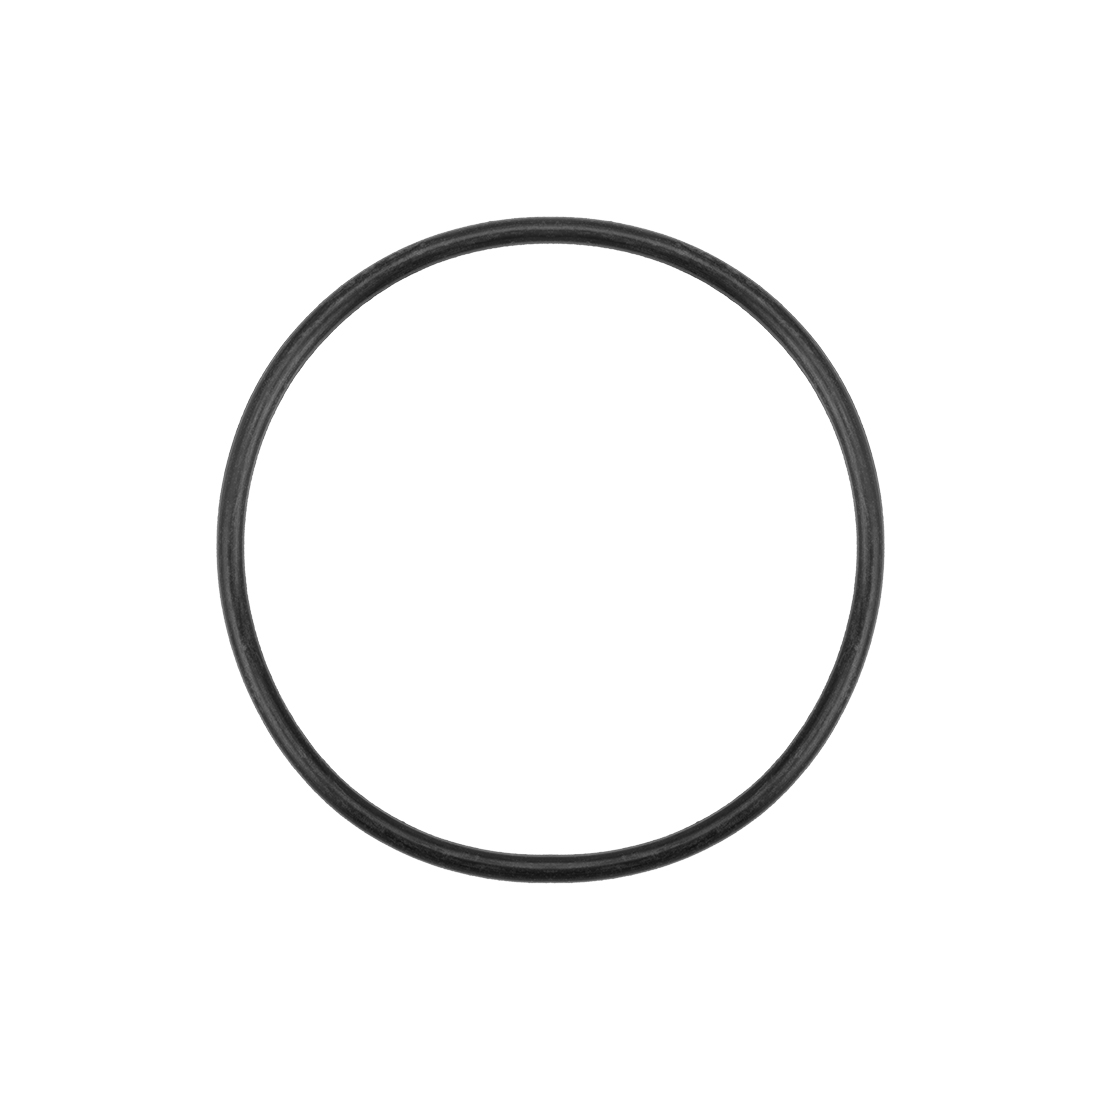 O-Rings Nitrile Rubber 54.5mm x 59.8mm x 2.65mm Round Seal Gasket